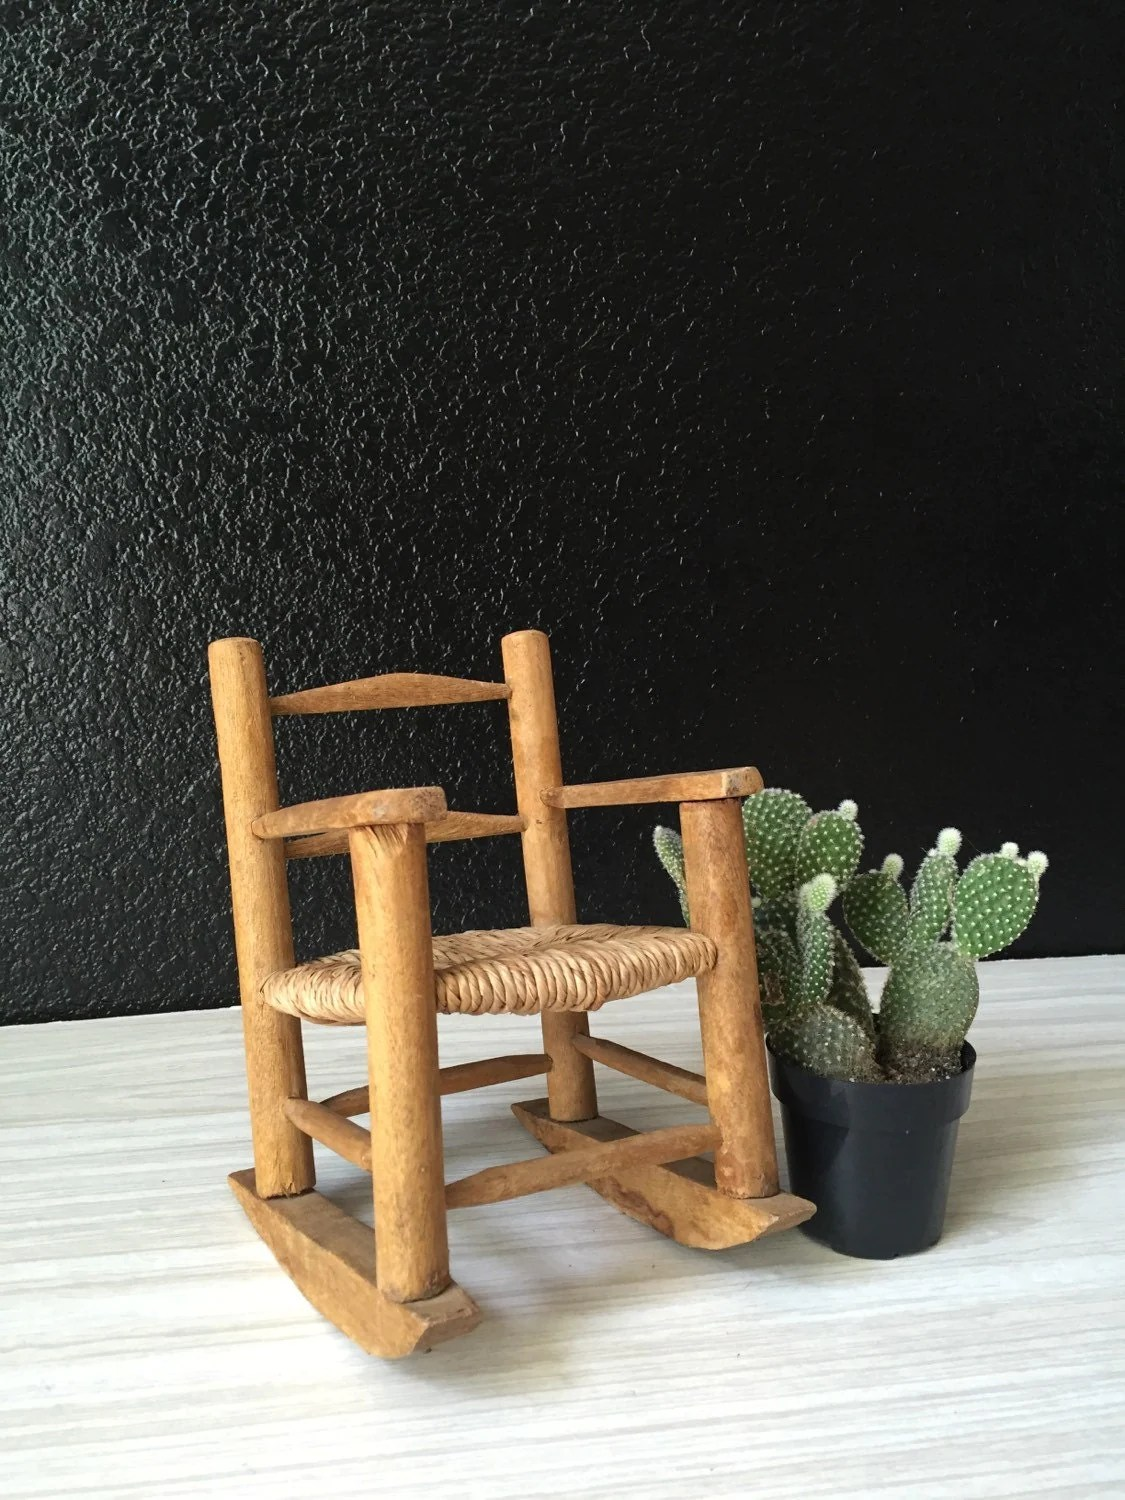 chair planter stand green 2005 vintage miniature doll wicker wood rocking plant